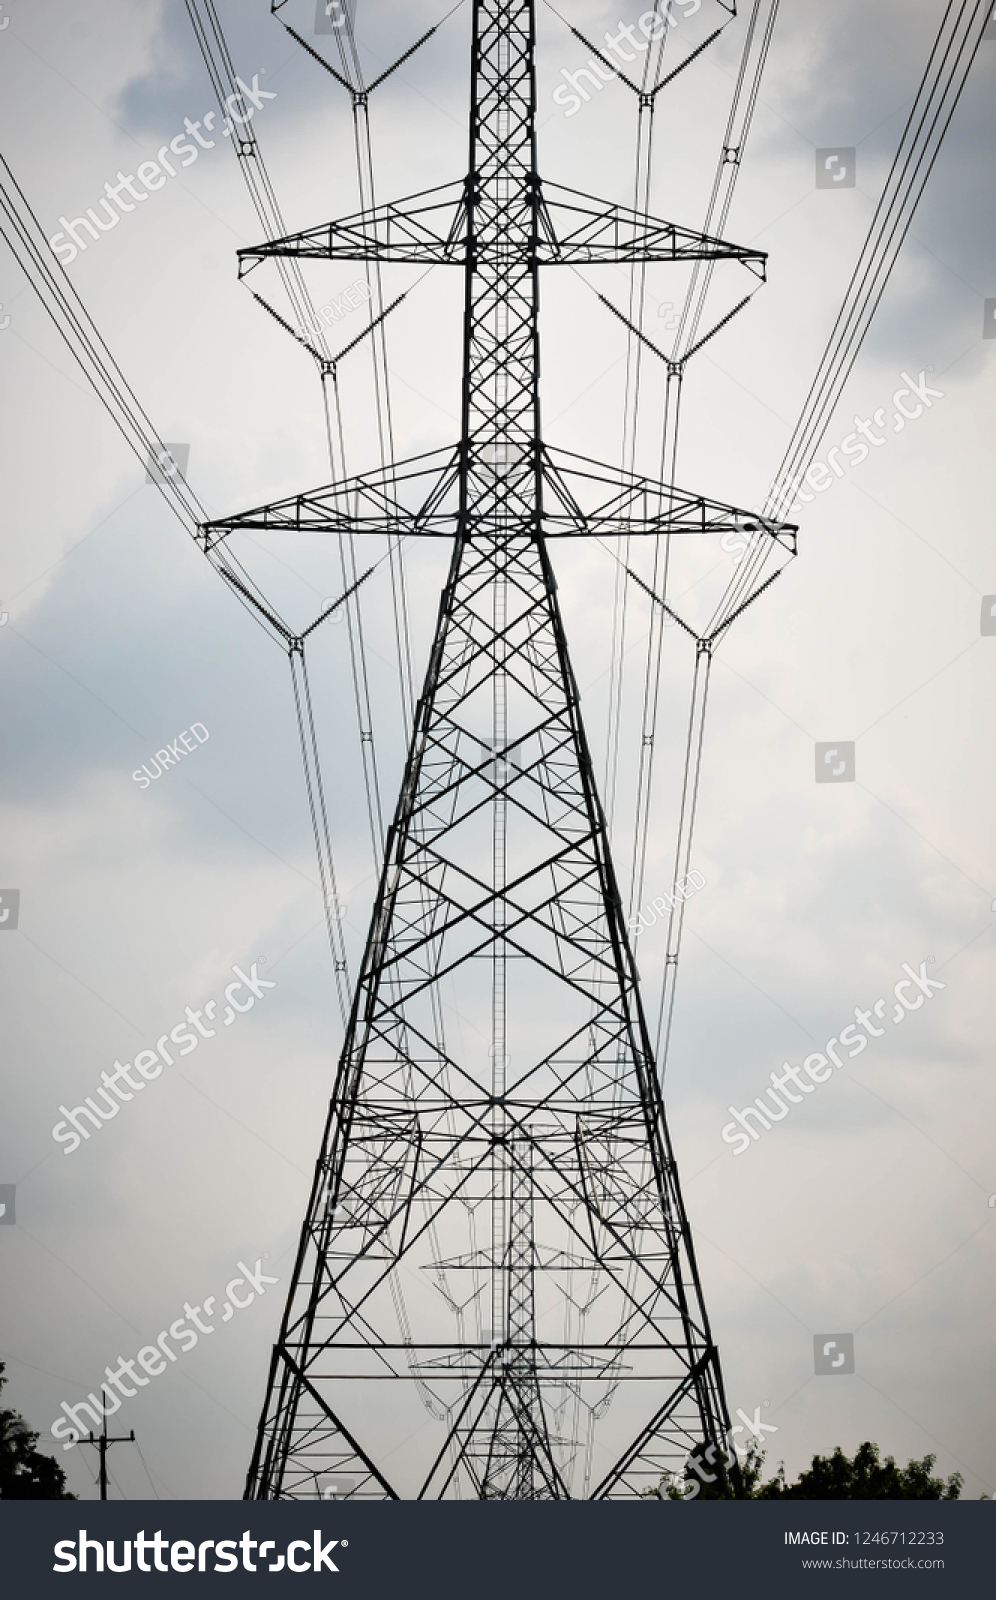 Group Silhouette Transmission Towers Power Tower Stock Photo Edit Now 1246712233